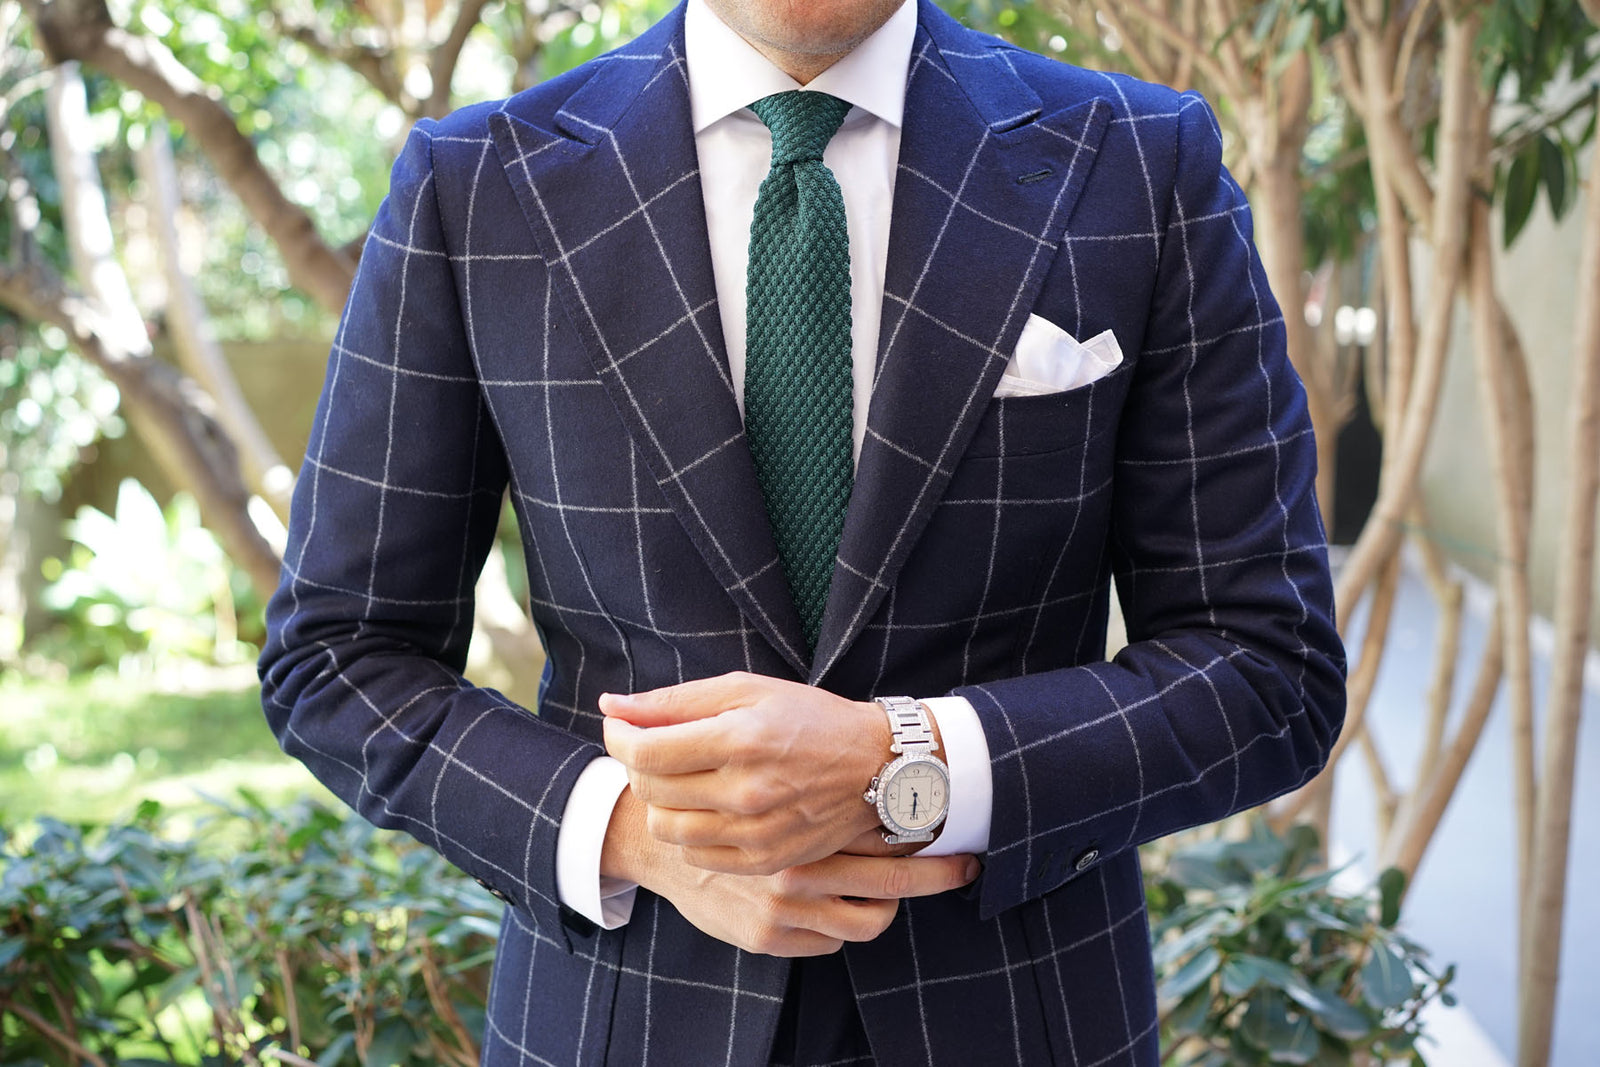 Rio Green Knitted Tie